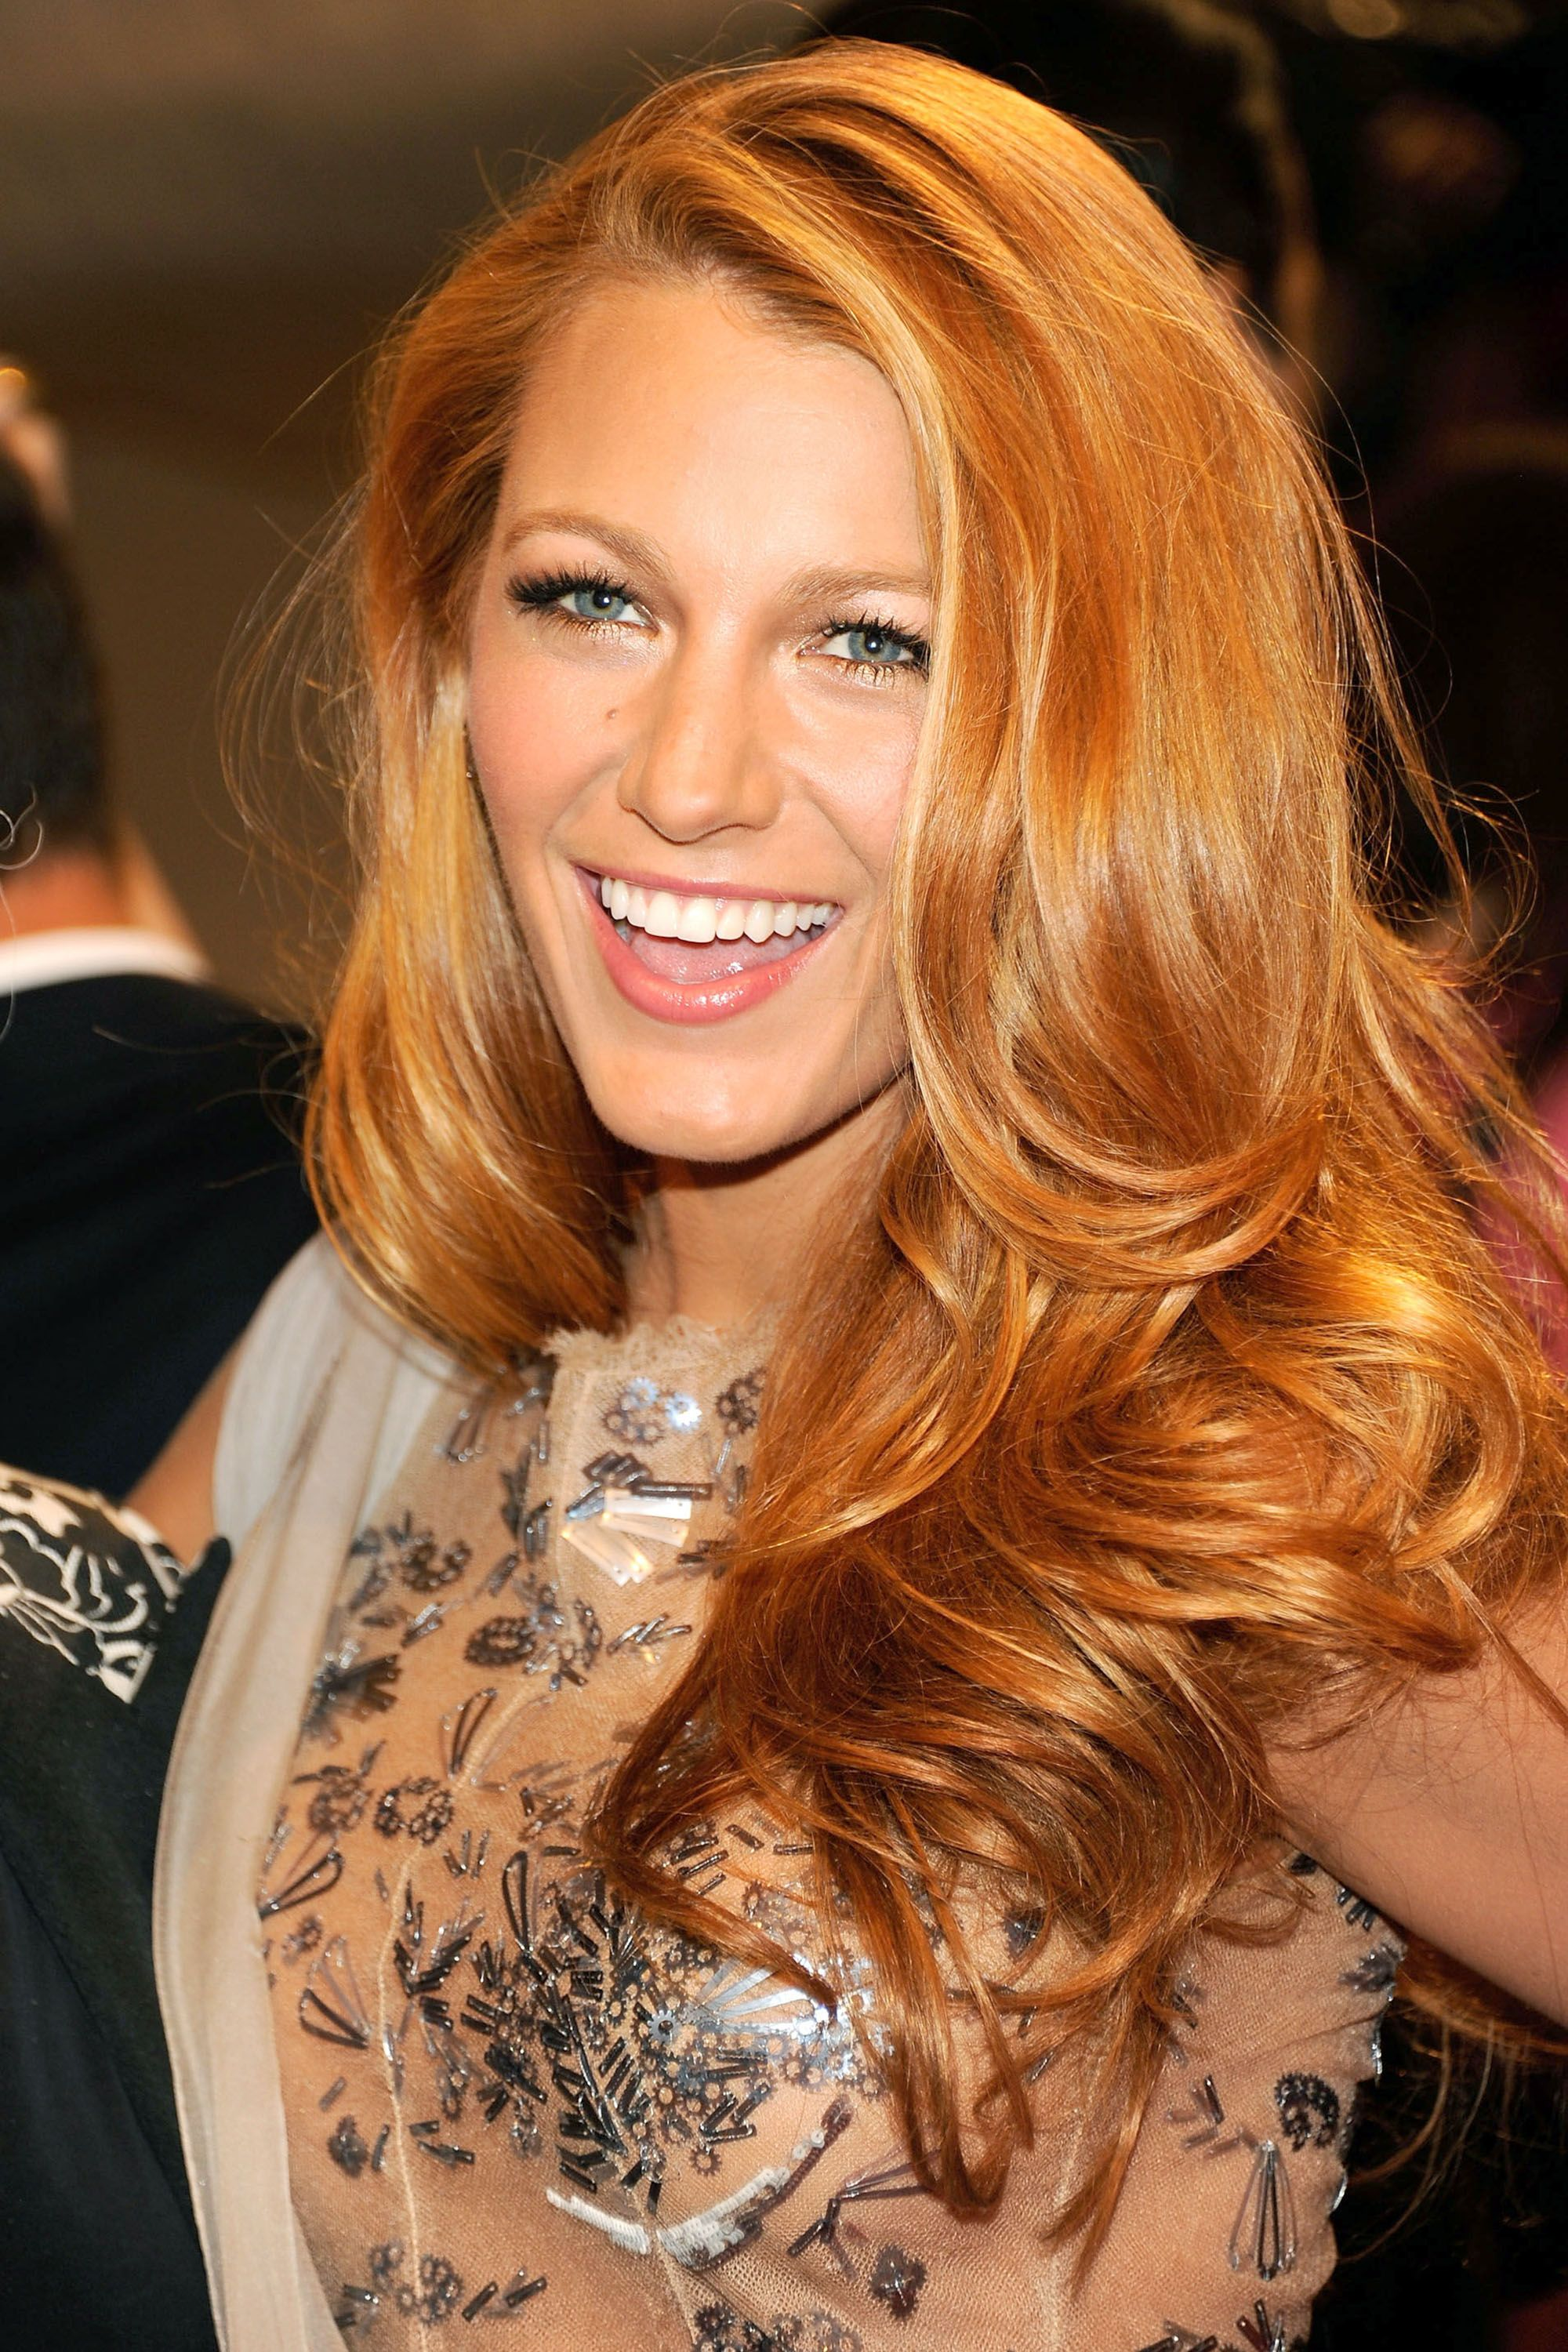 "<p>Who says Blake Lively looks best as a blonde? We loved the way these orangey copper tones once suited her fair skin tone.<span class=""redactor-invisible-space""></span></p>"